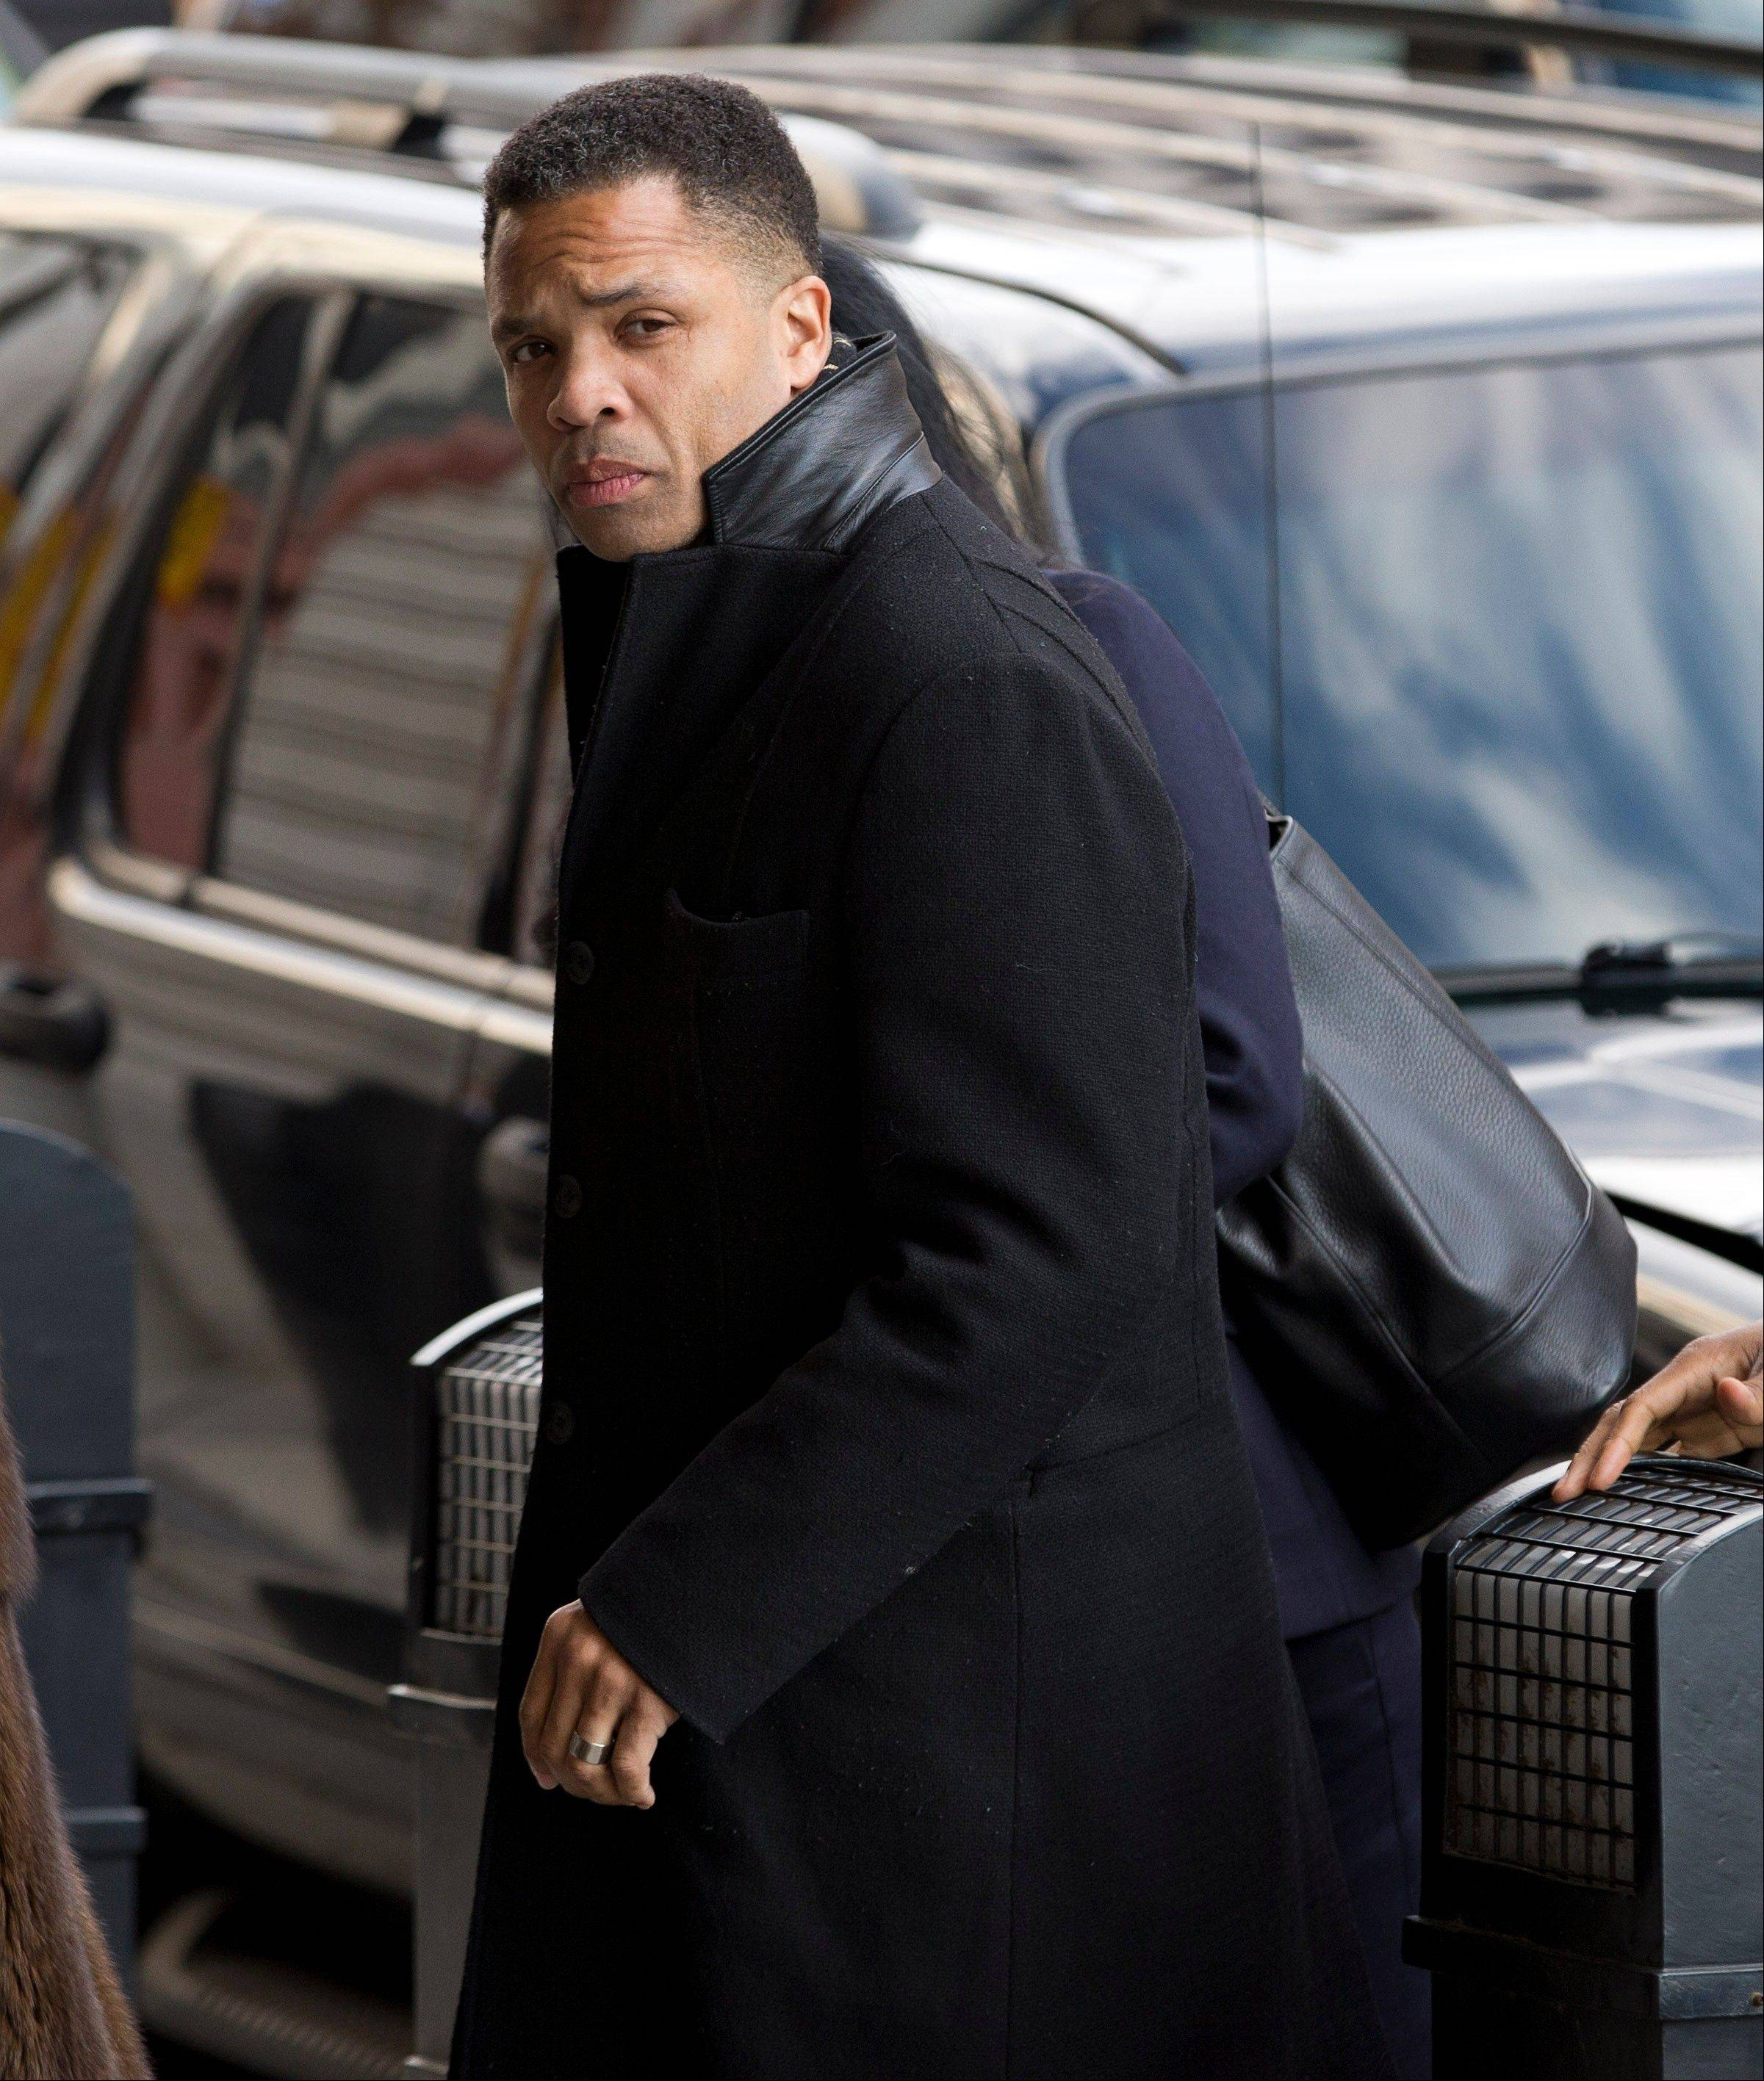 Former Illinois Rep. Jesse Jackson Jr. arrives at the E. Barrett Prettyman Federal Courthouse in Washington, Wednesday.